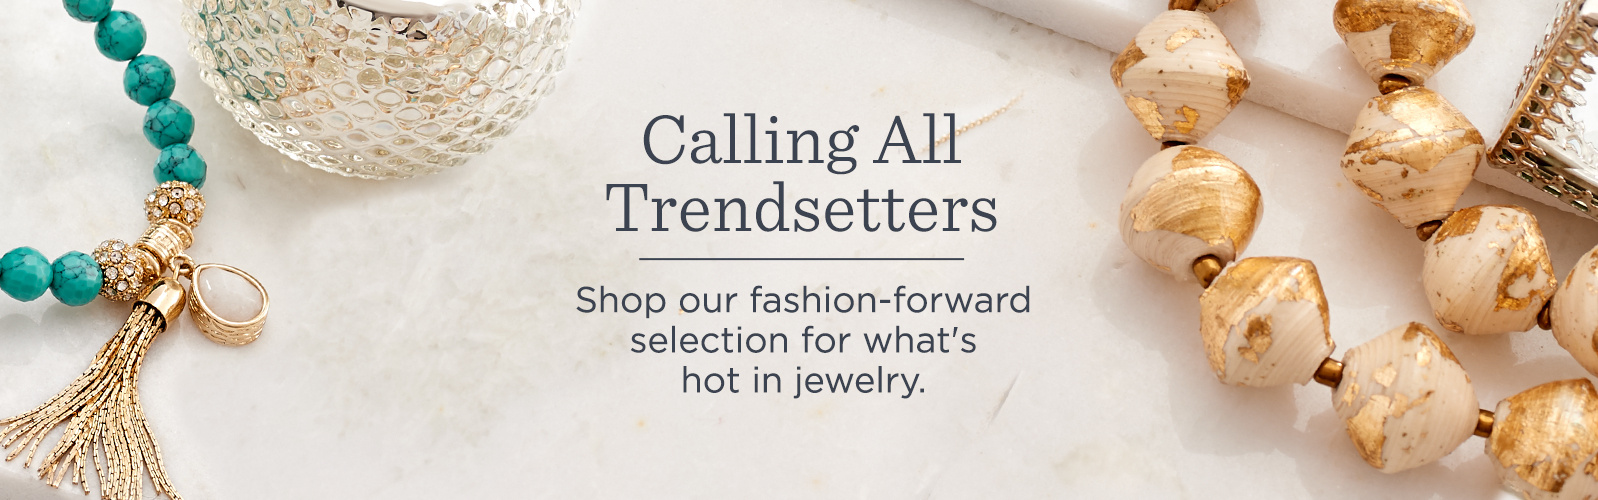 Calling All Trendsetters. Shop our fashion-forward selection for what's hot in jewelry.